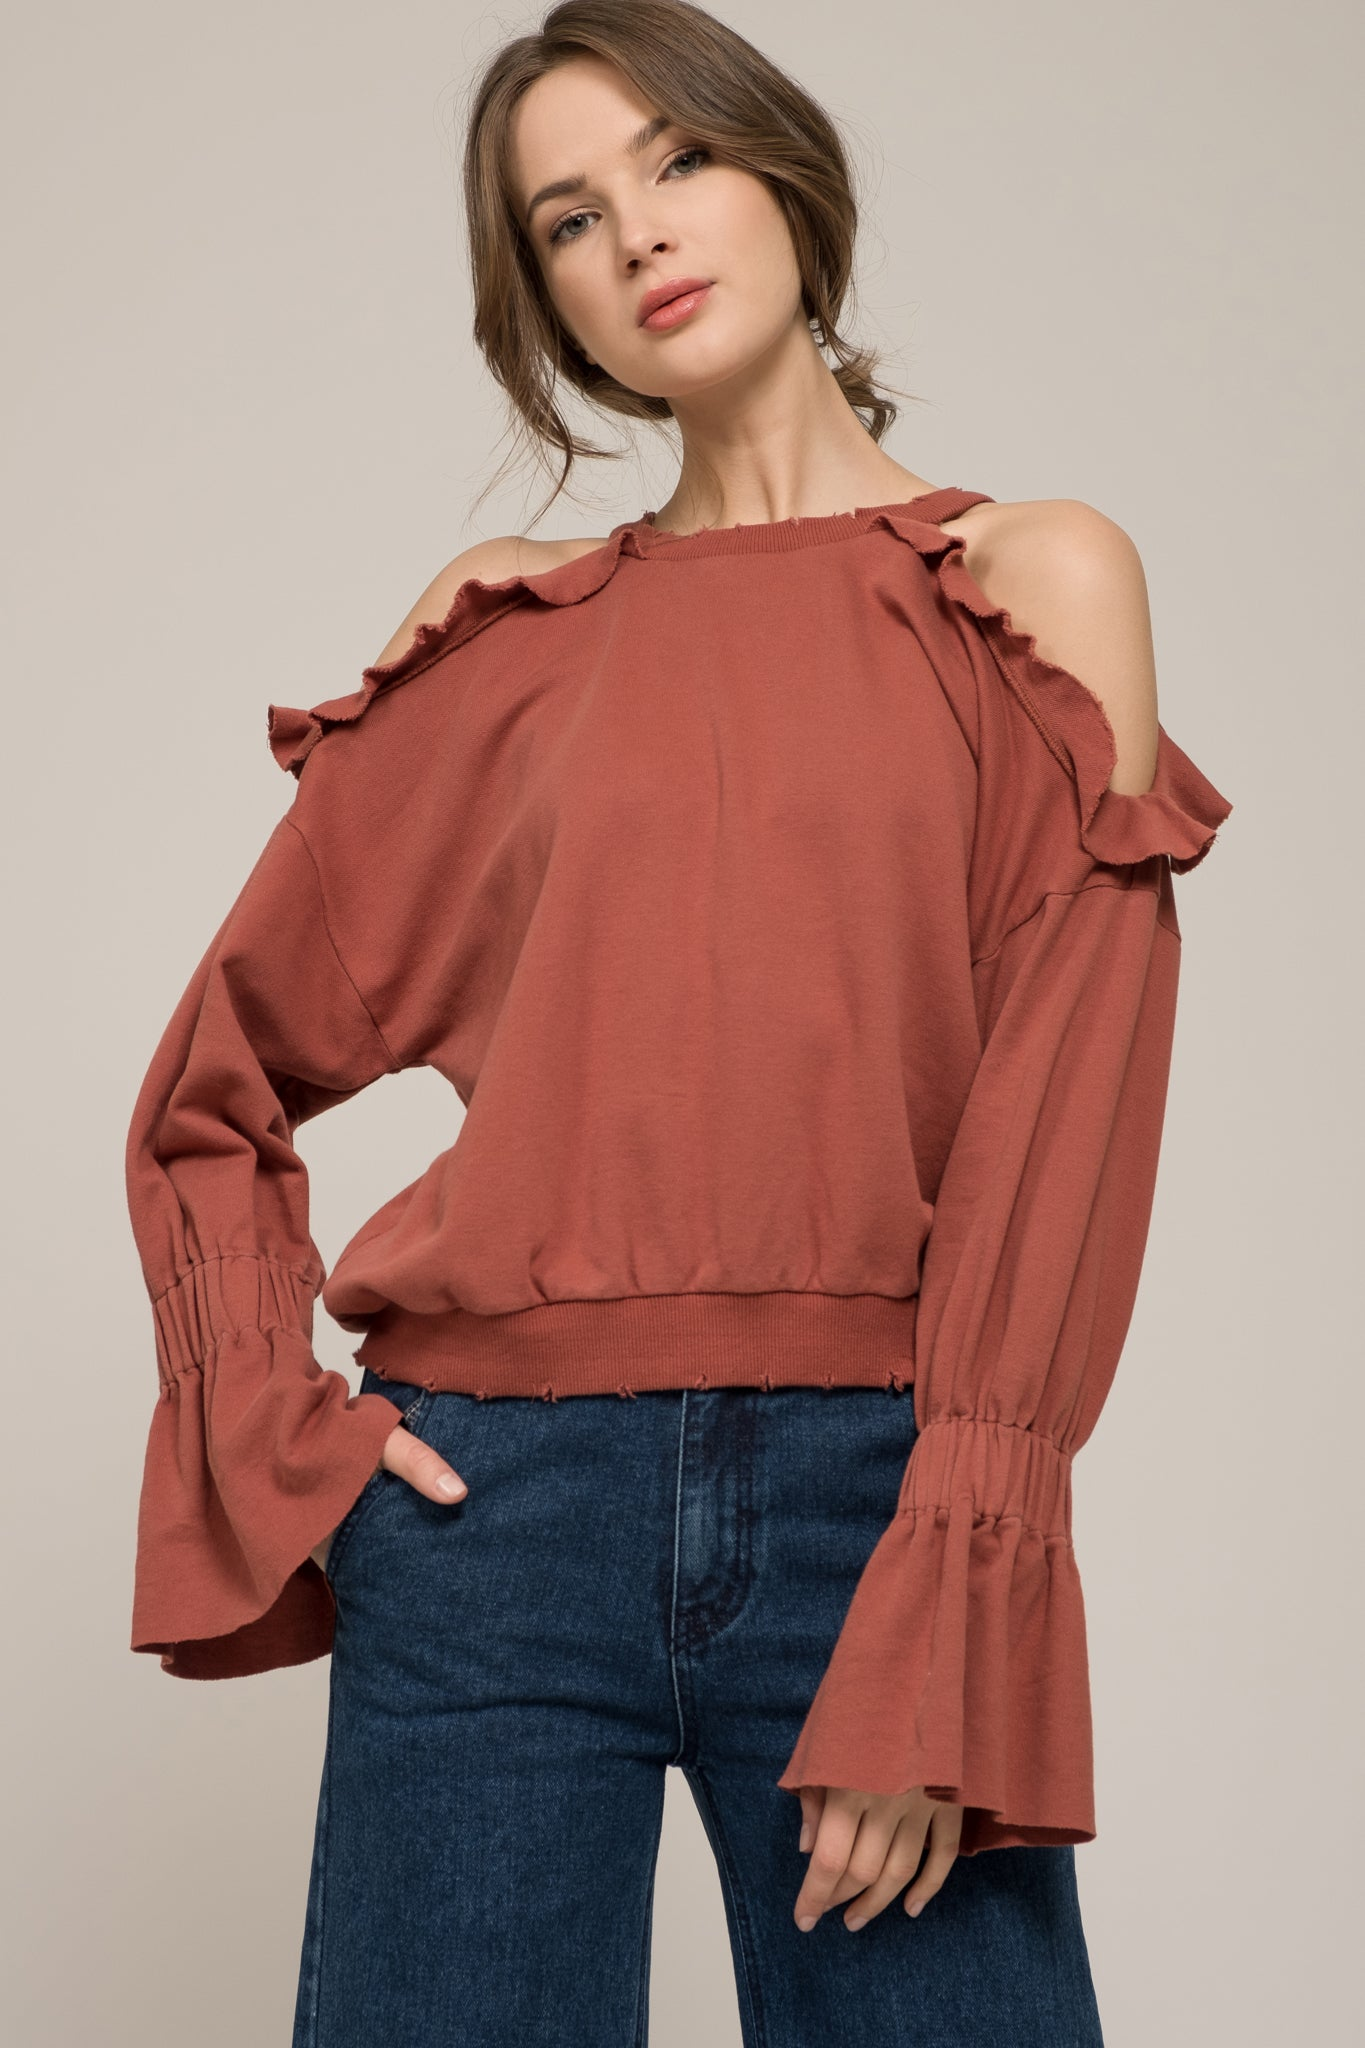 2bc4e13dac6d48 COLD SHOULDER RUFFLE TOP WITH DISTRESSED HEM – Moon River